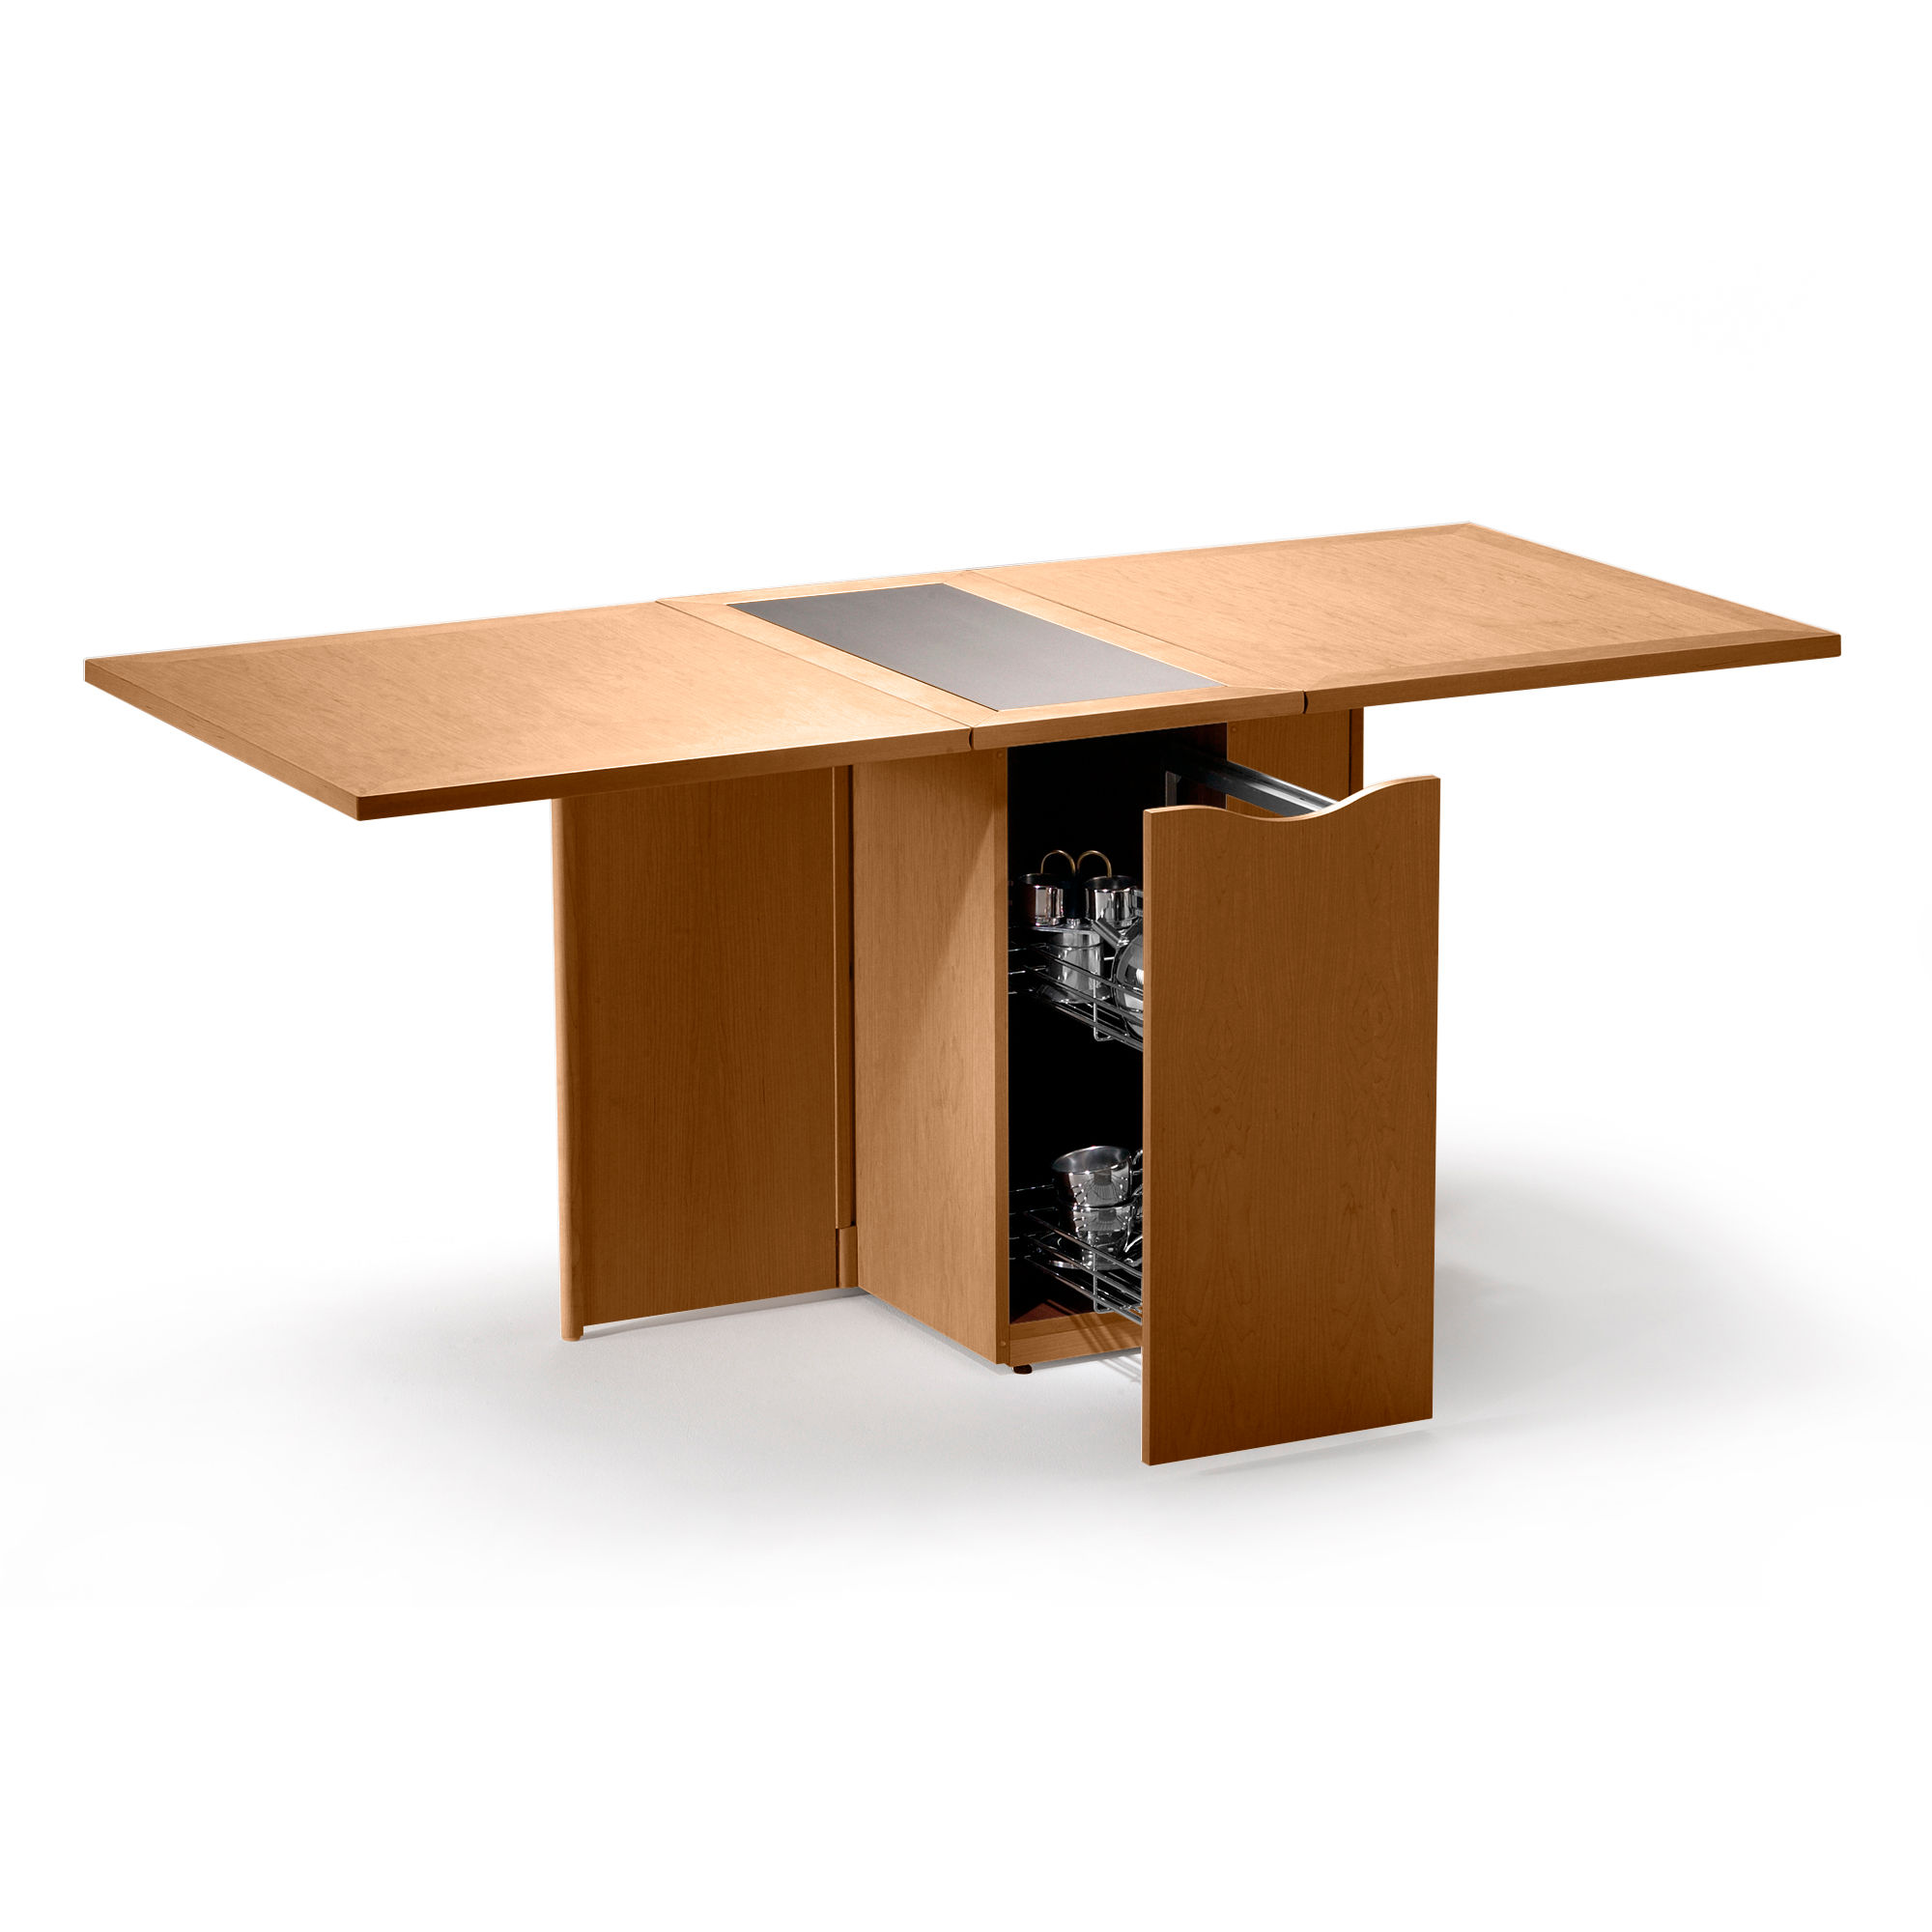 top 10 dining tables smart furniture ForTop 10 Dining Tables